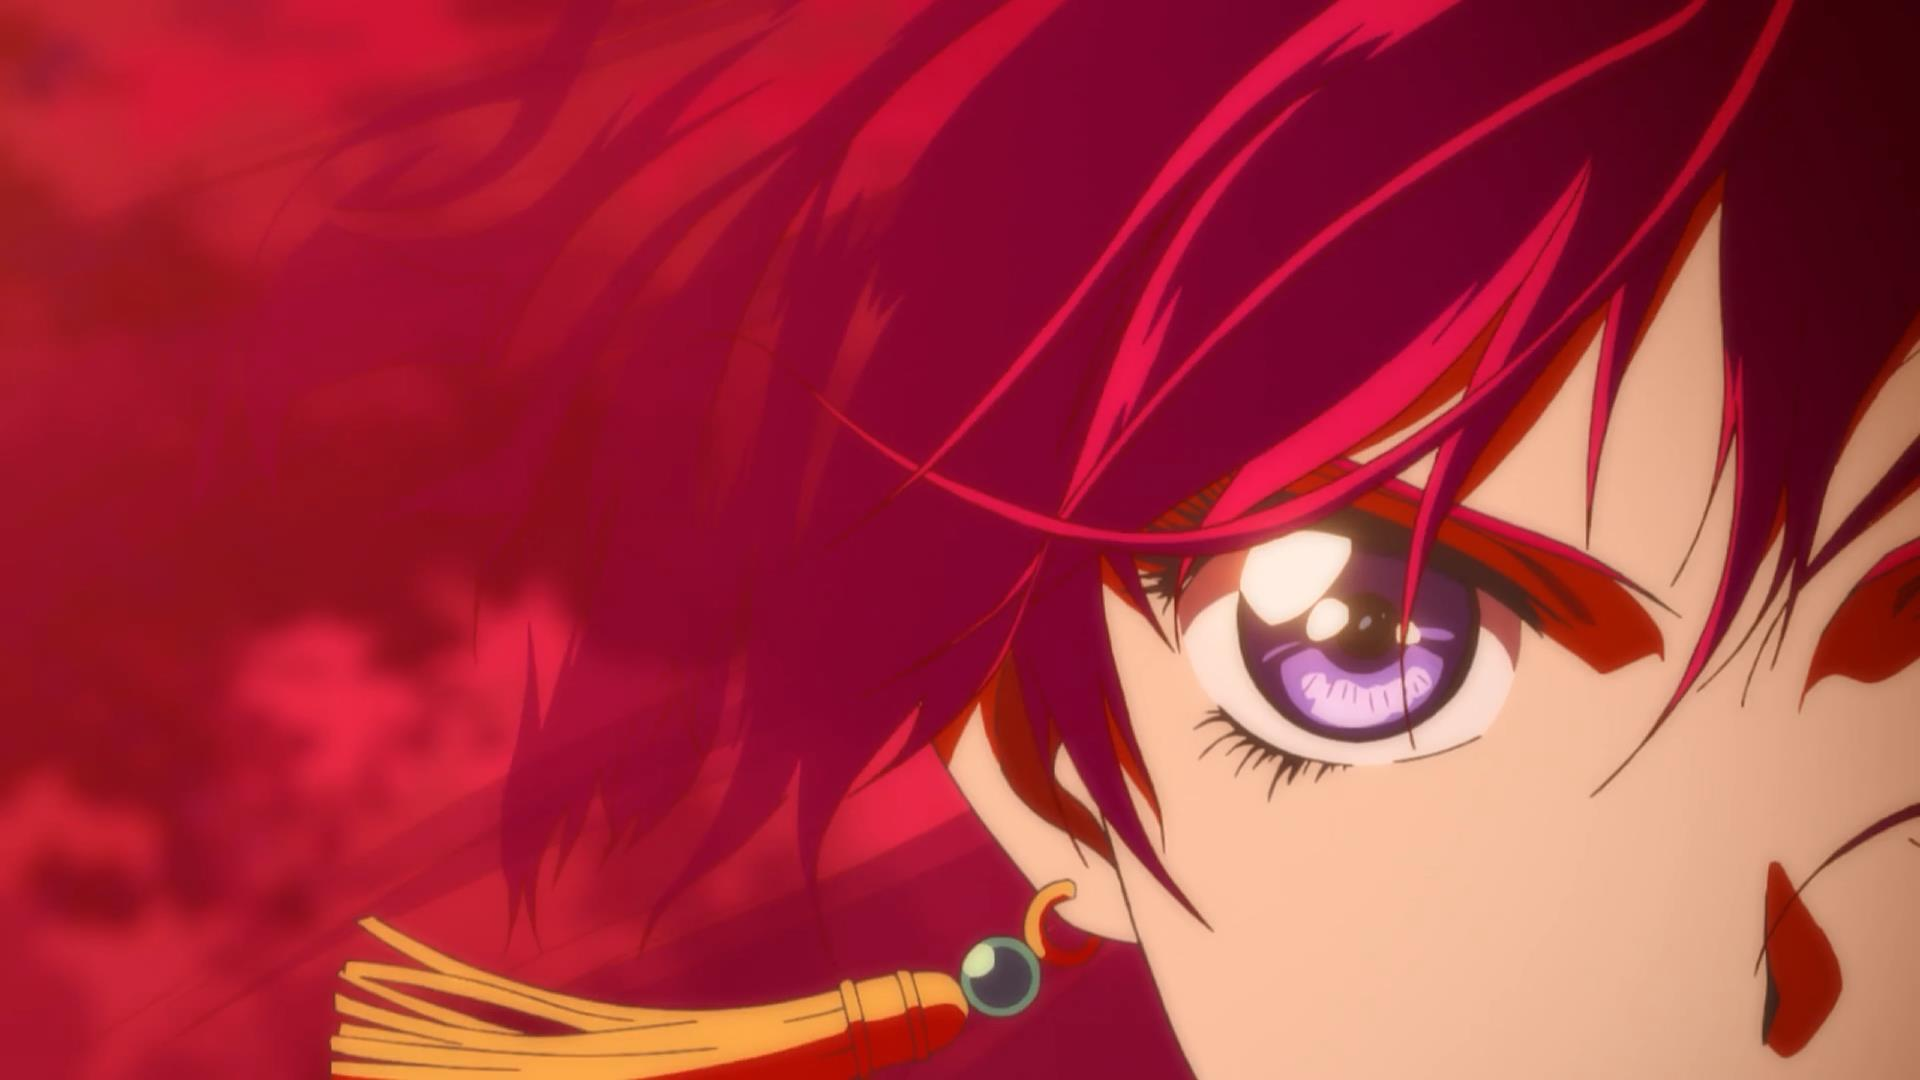 Fate Zero Wallpaper Hd Akatsuki No Yona 06 Random Curiosity